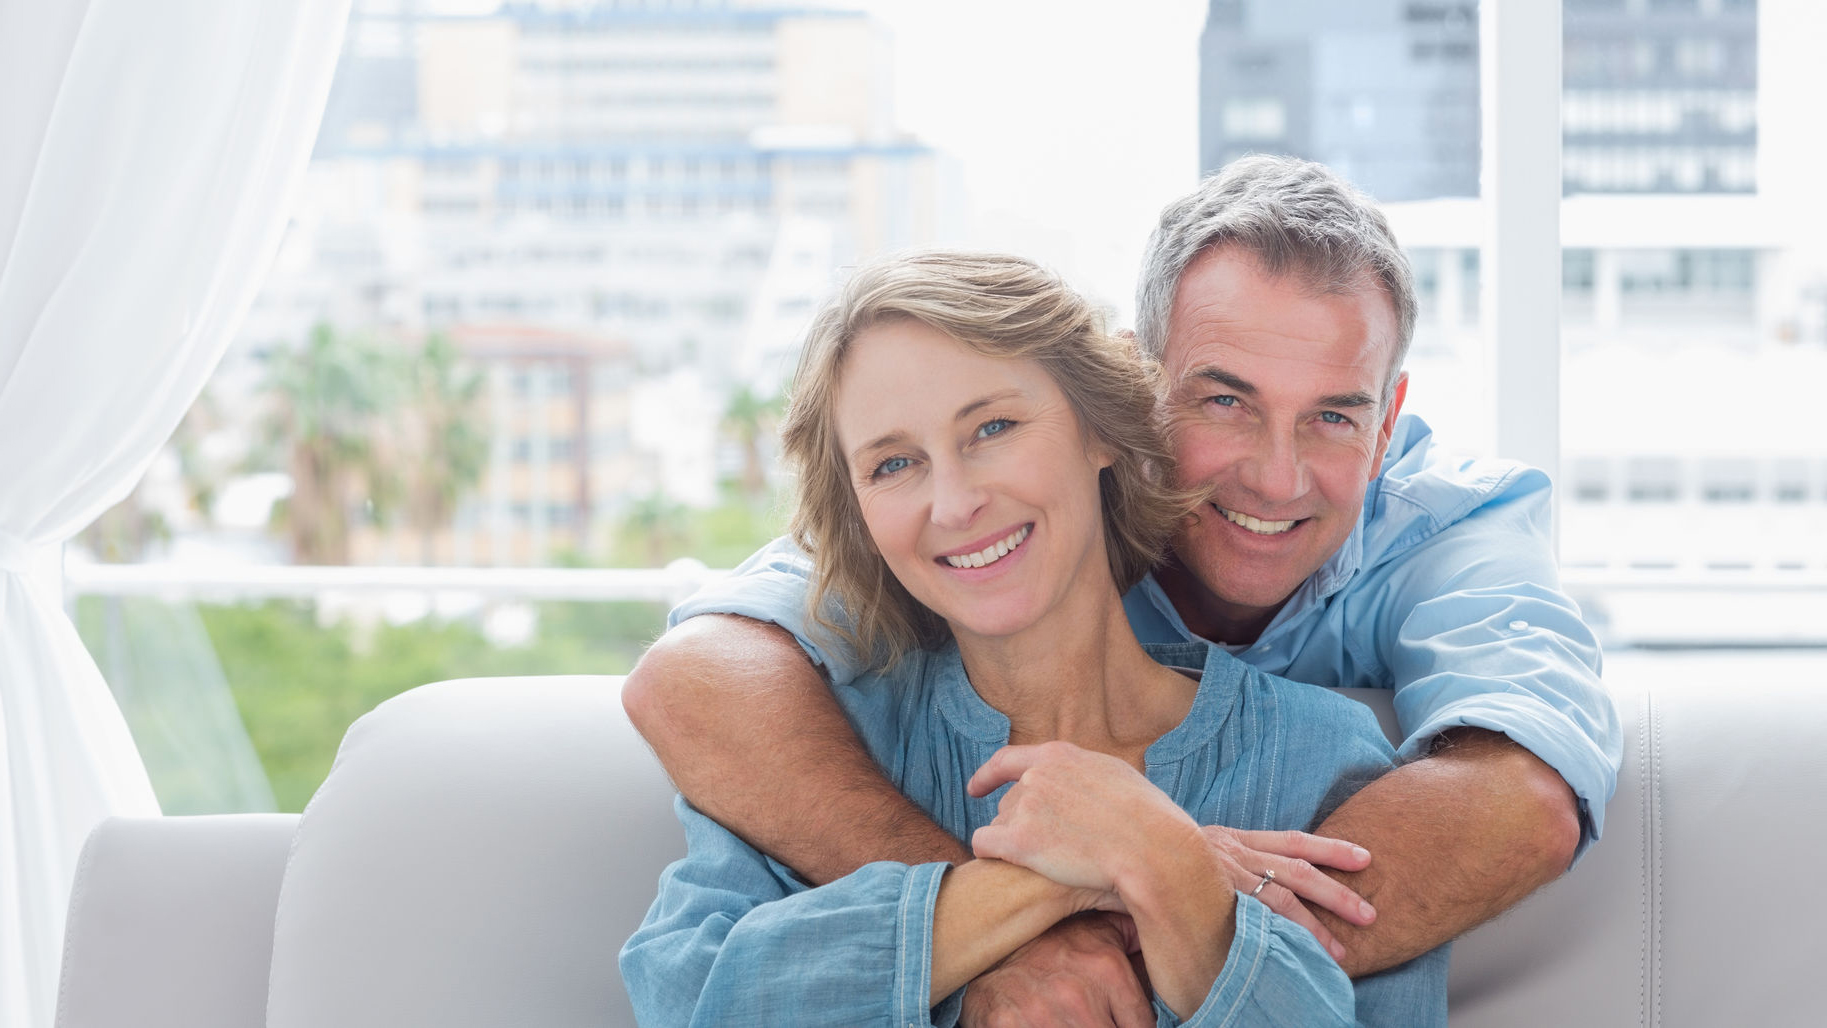 Smiling older man and woman on couch.